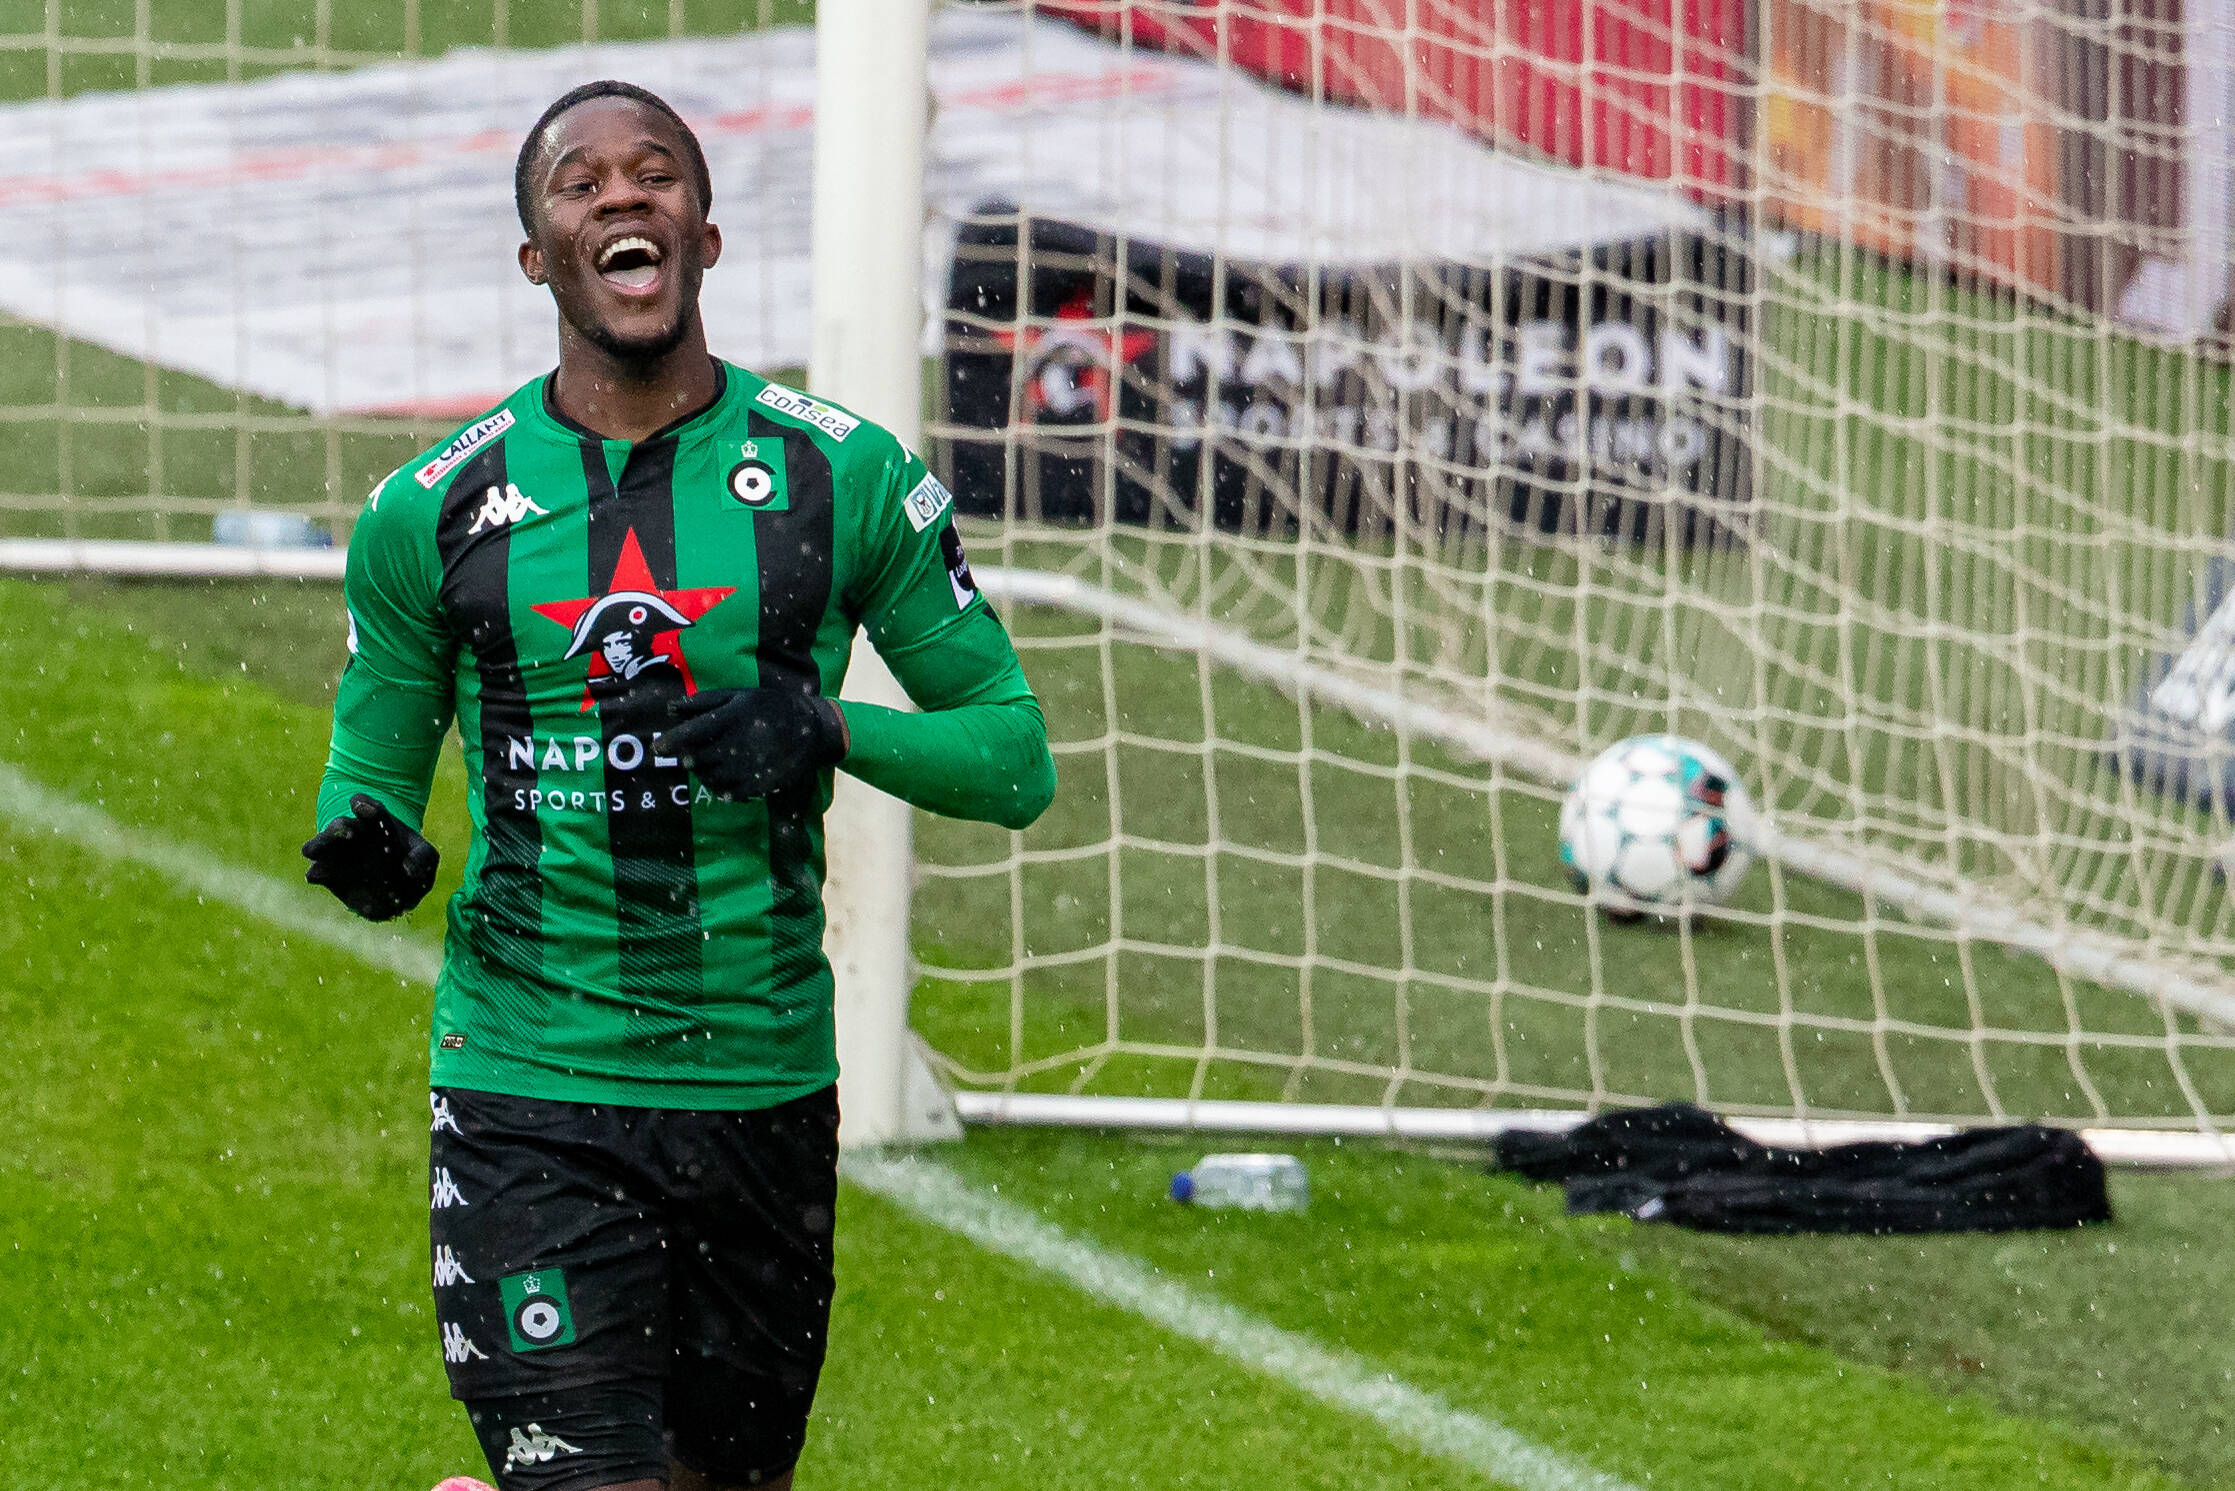 Cercle s Ike Ugbo celebrates after scoring during a soccer match between Cercle Brugge and Oud-Heverlee Leuven, Saturday 10 April 2021 in Brugge, on day 33 of the Jupiler Pro League first division of the Belgian championship. KURTxDESPLENTER PUBLICATIONxINxGERxSUIxAUTxONLY x2690737x